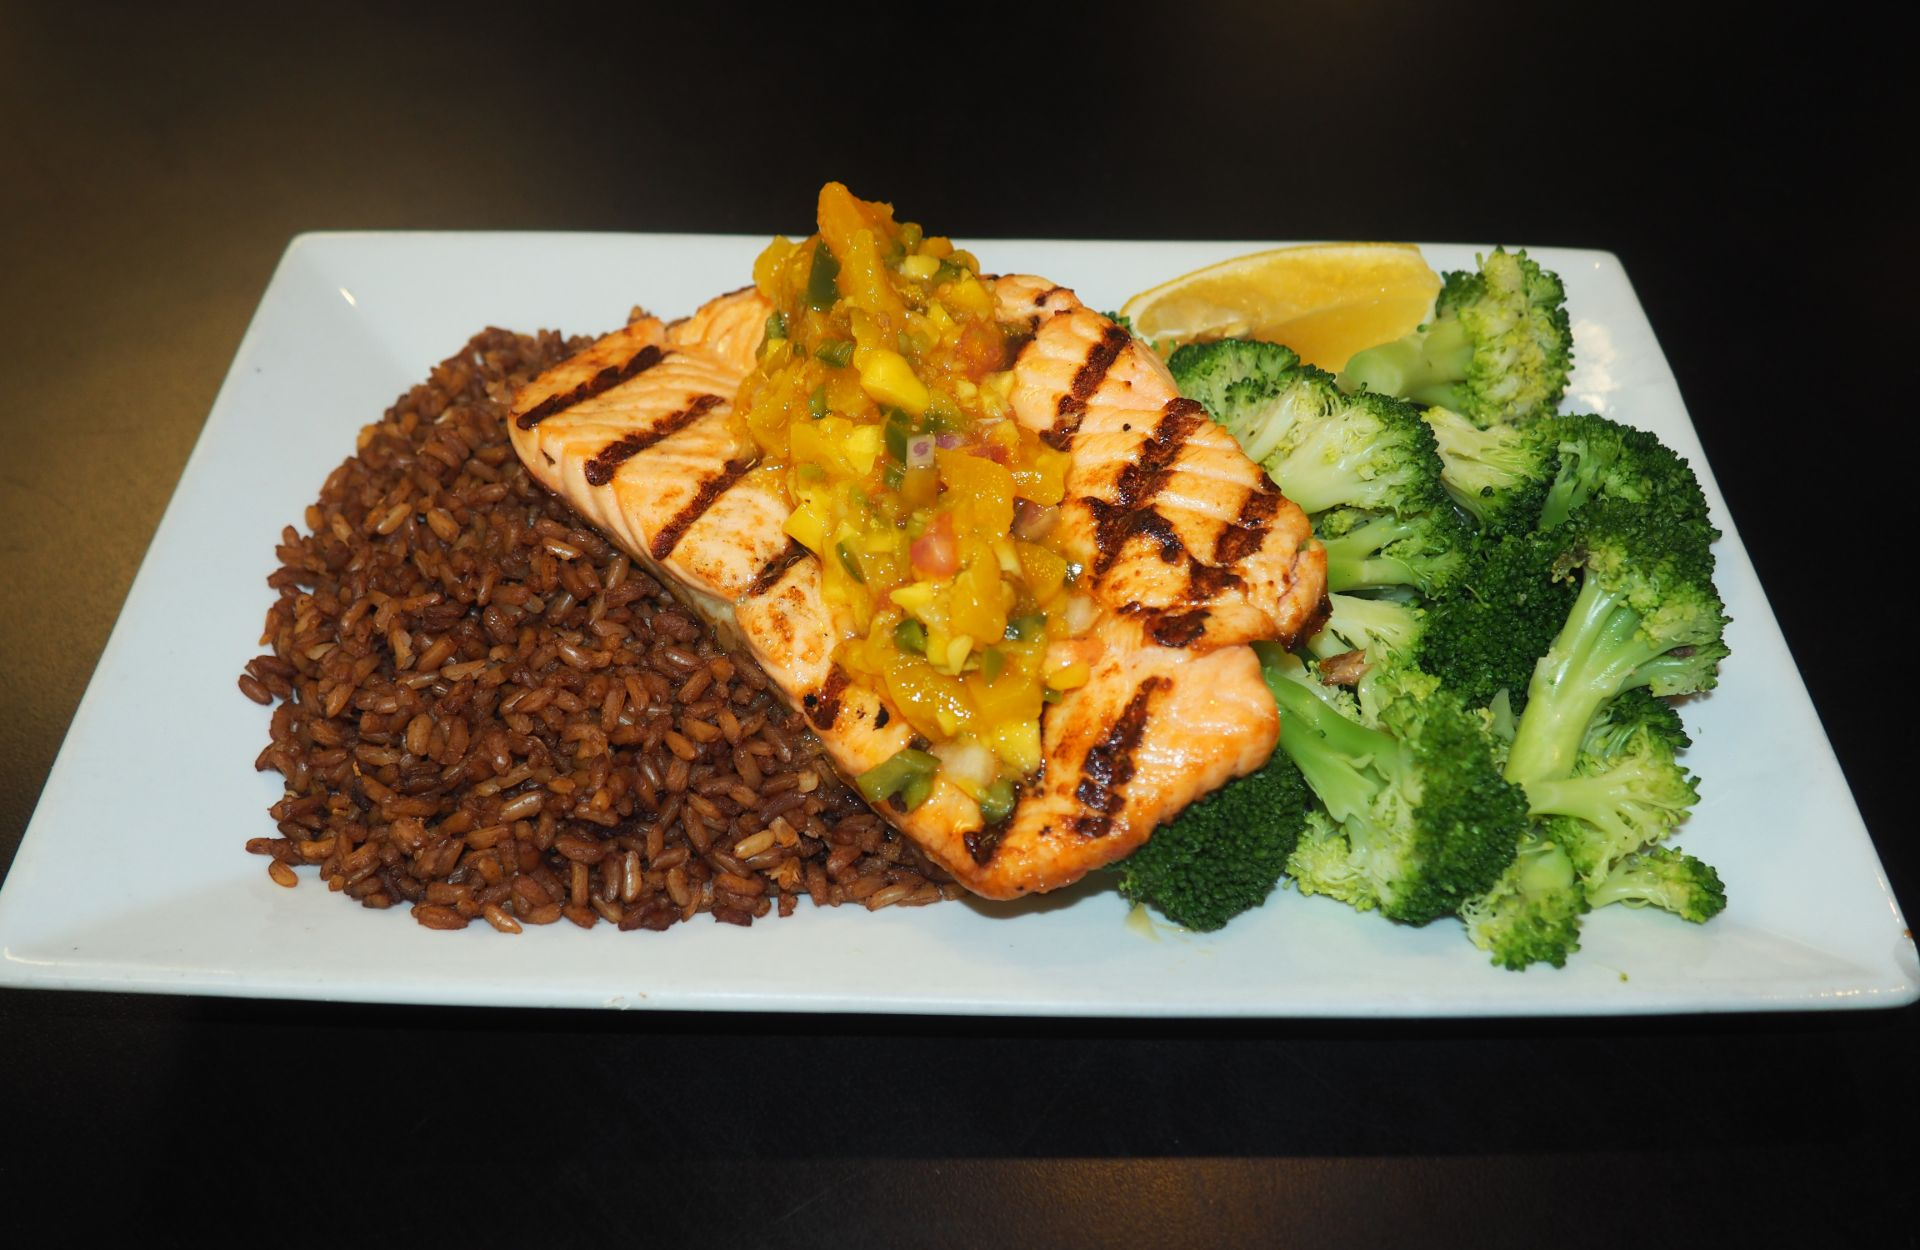 Grilled salmon with mango salsa, brown rice and broccoli